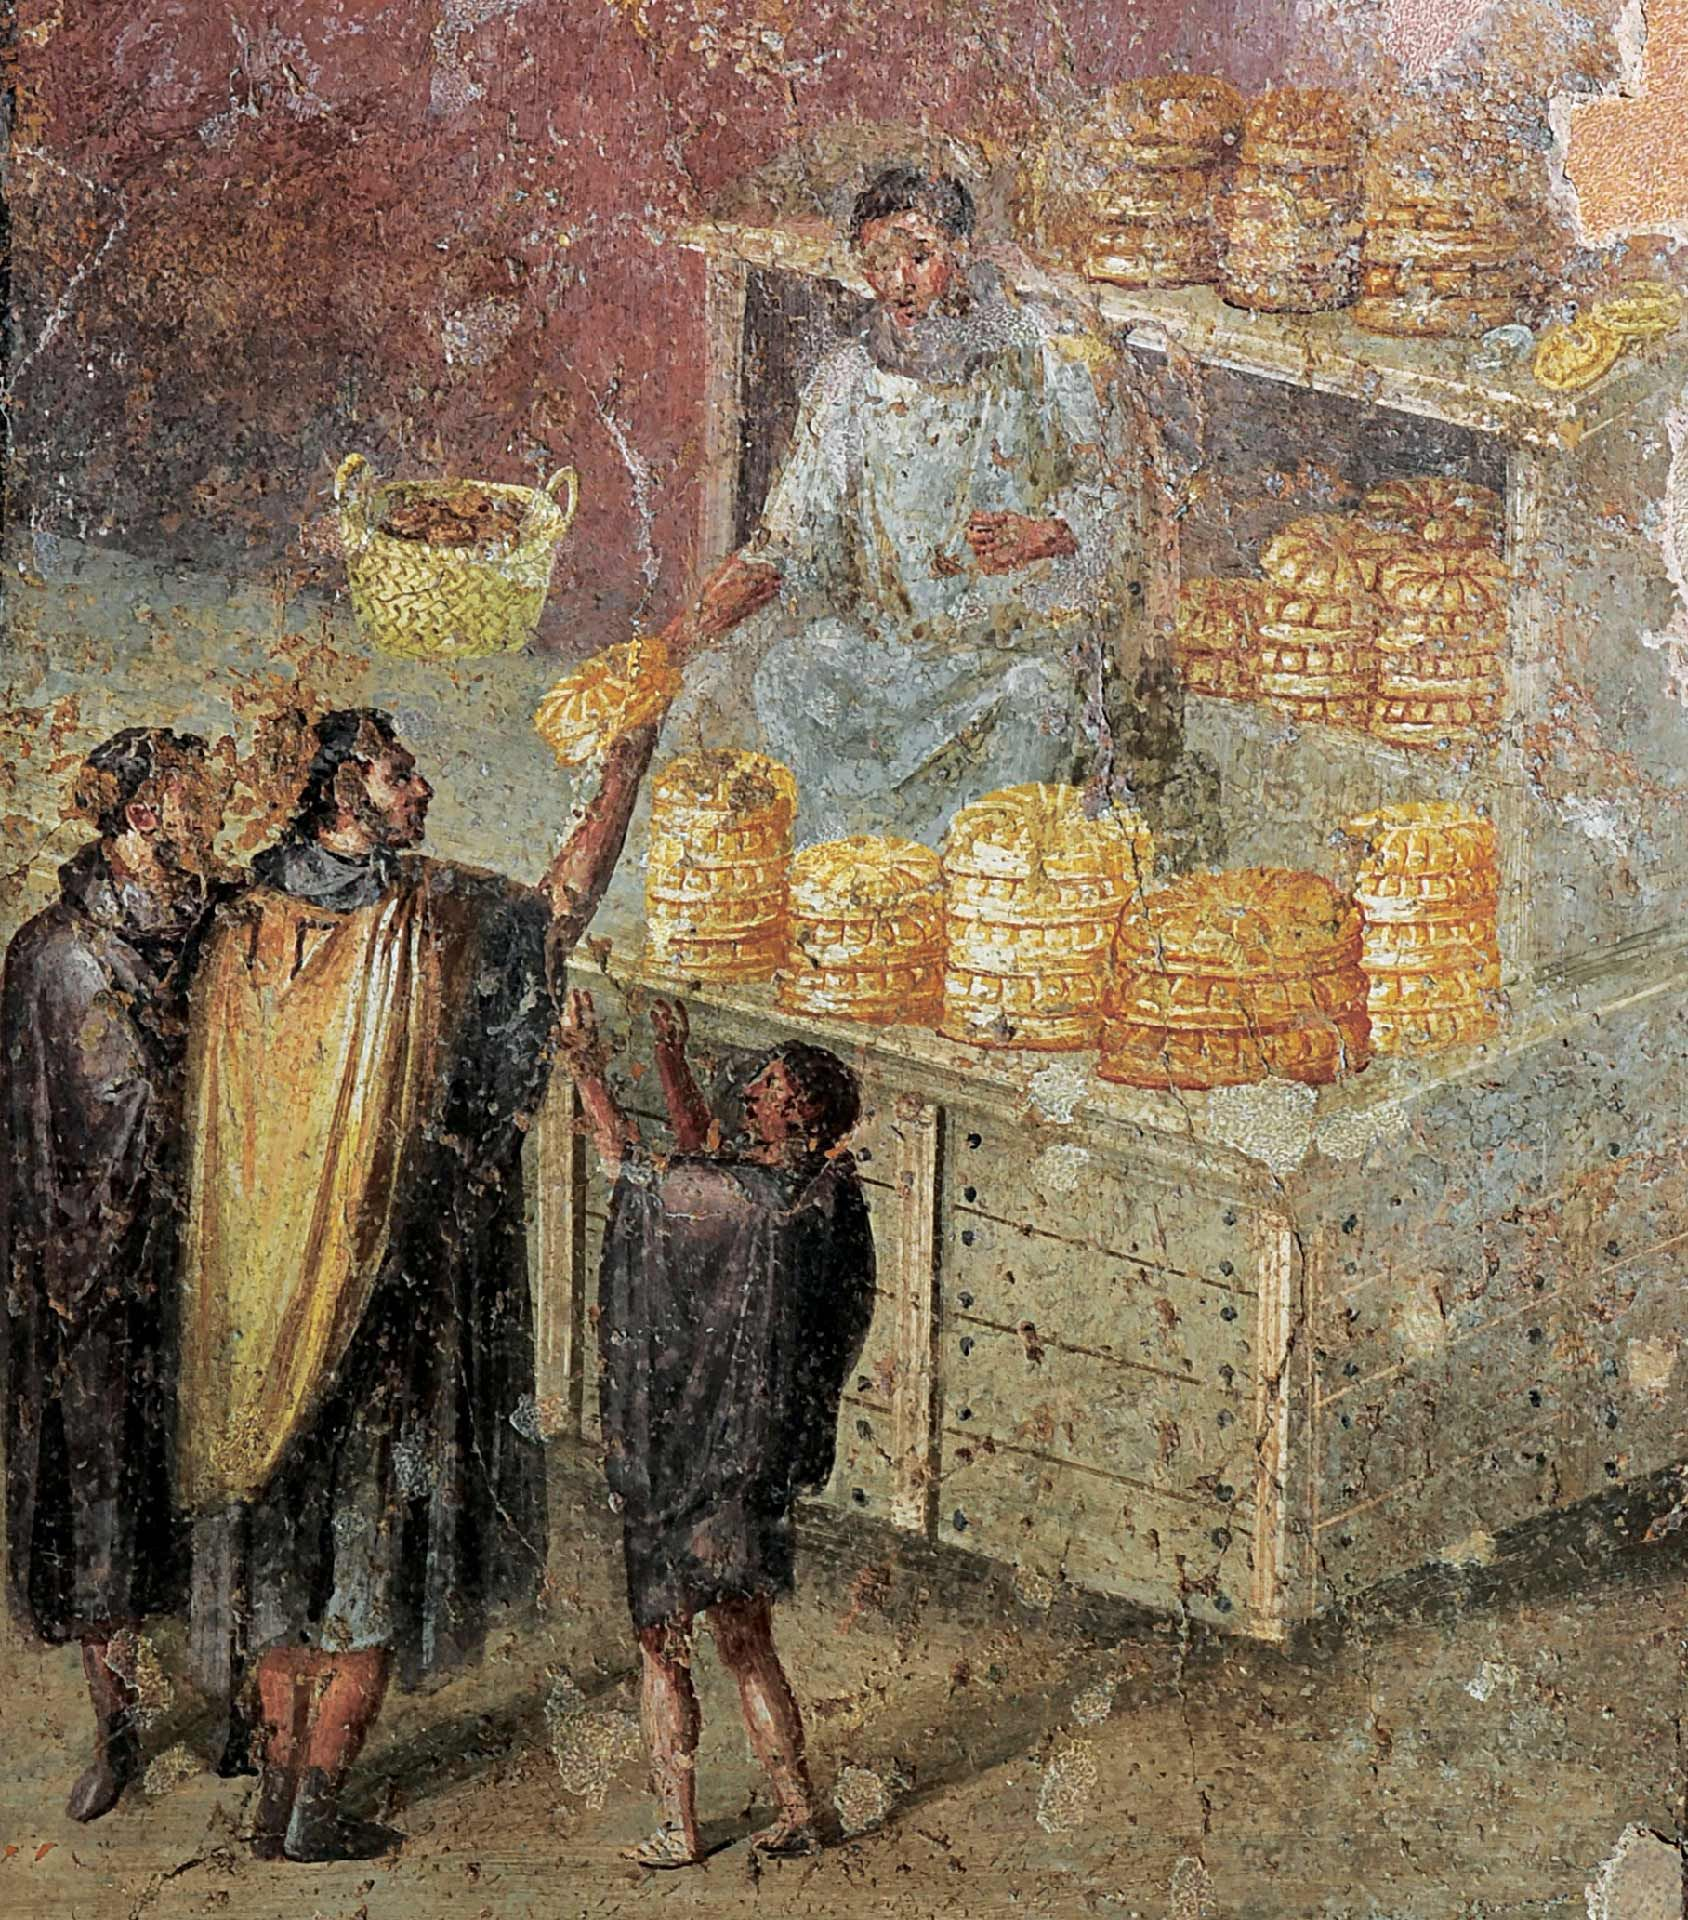 Fresco of the distribution of bread, painted plaster, Pompeii, tablinum, House of the Baker. Museo Archeologico Nazionale di Napoli (MANN)